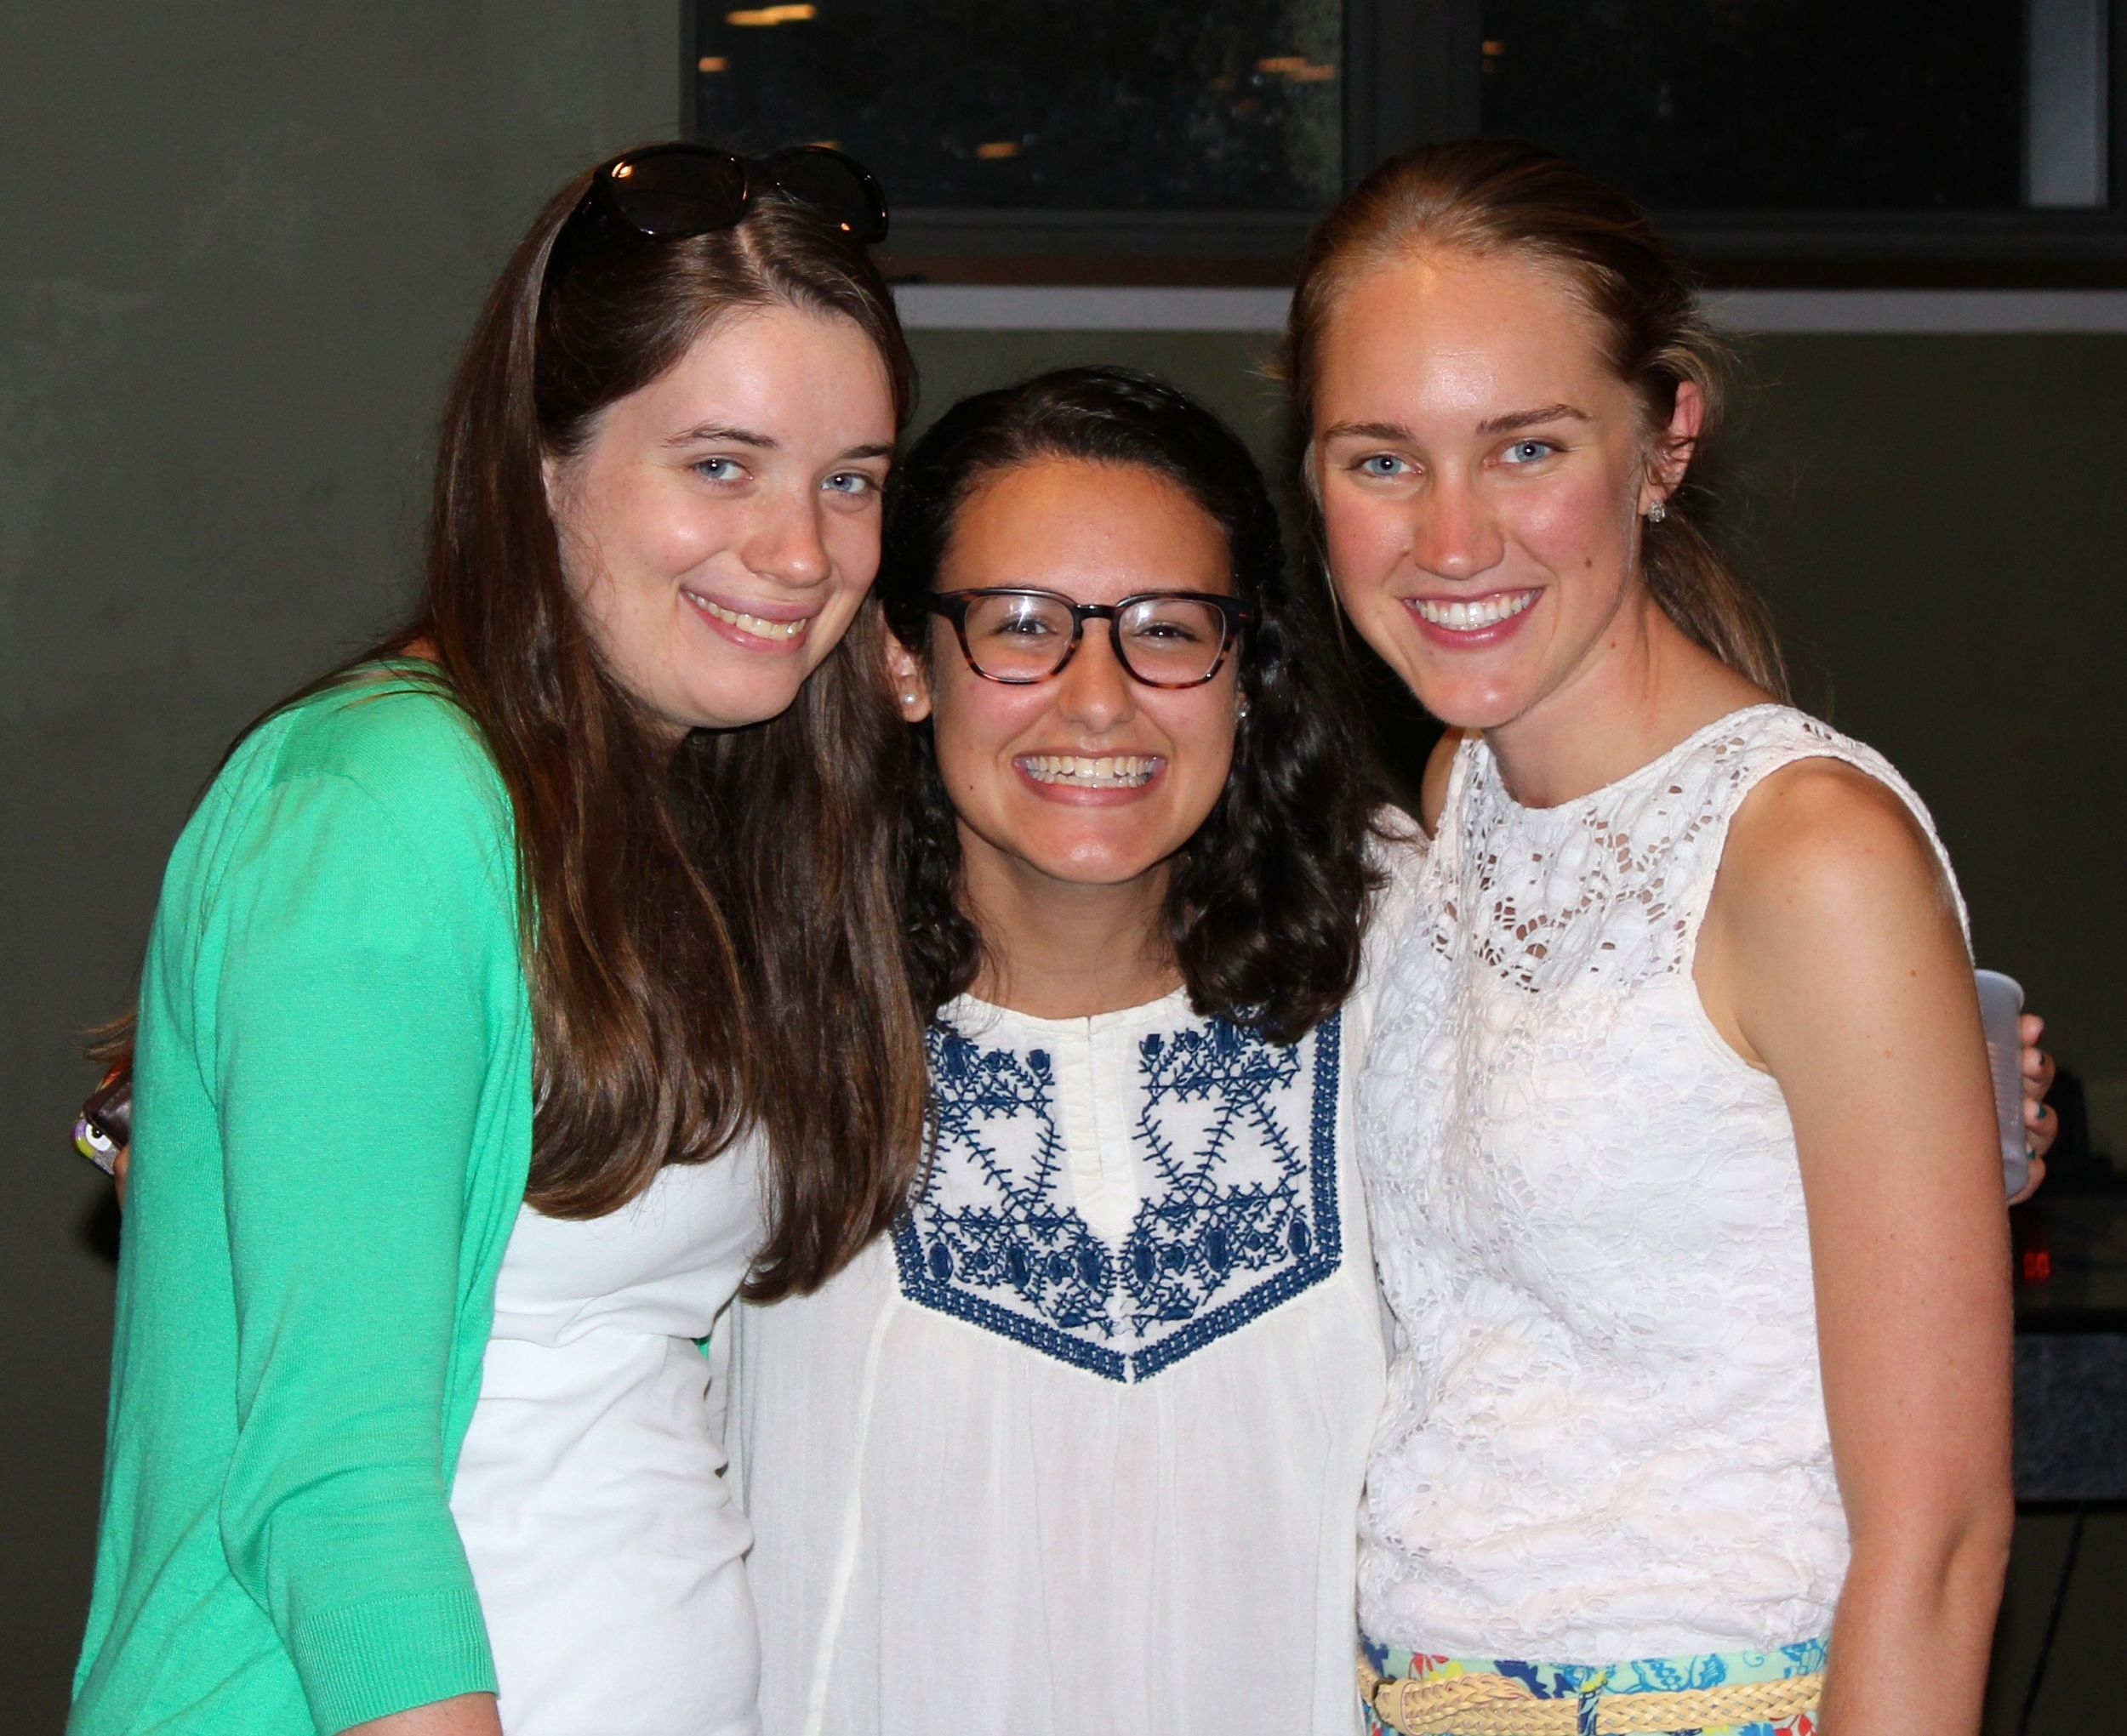 Paola Hegedus (center) with FOCUS Missionary Deirdre Gaughan (left) and SPO Mission Leader  Michela Brooks